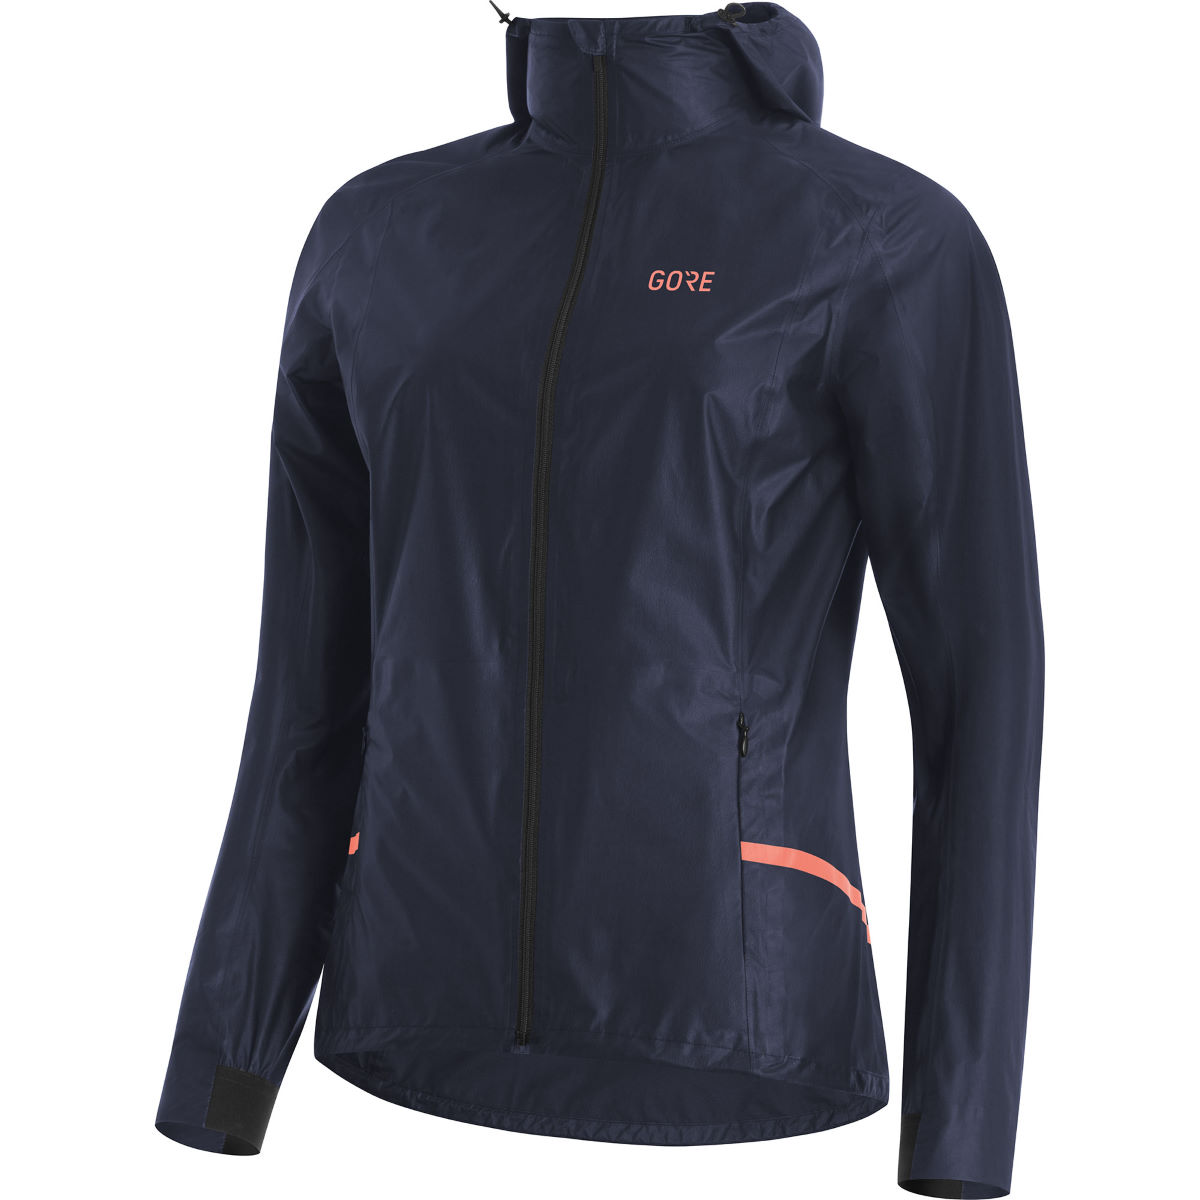 Gore Women's R7 GORE-TEX® SHAKEDRY Hooded Jacket - XS Storm Blue